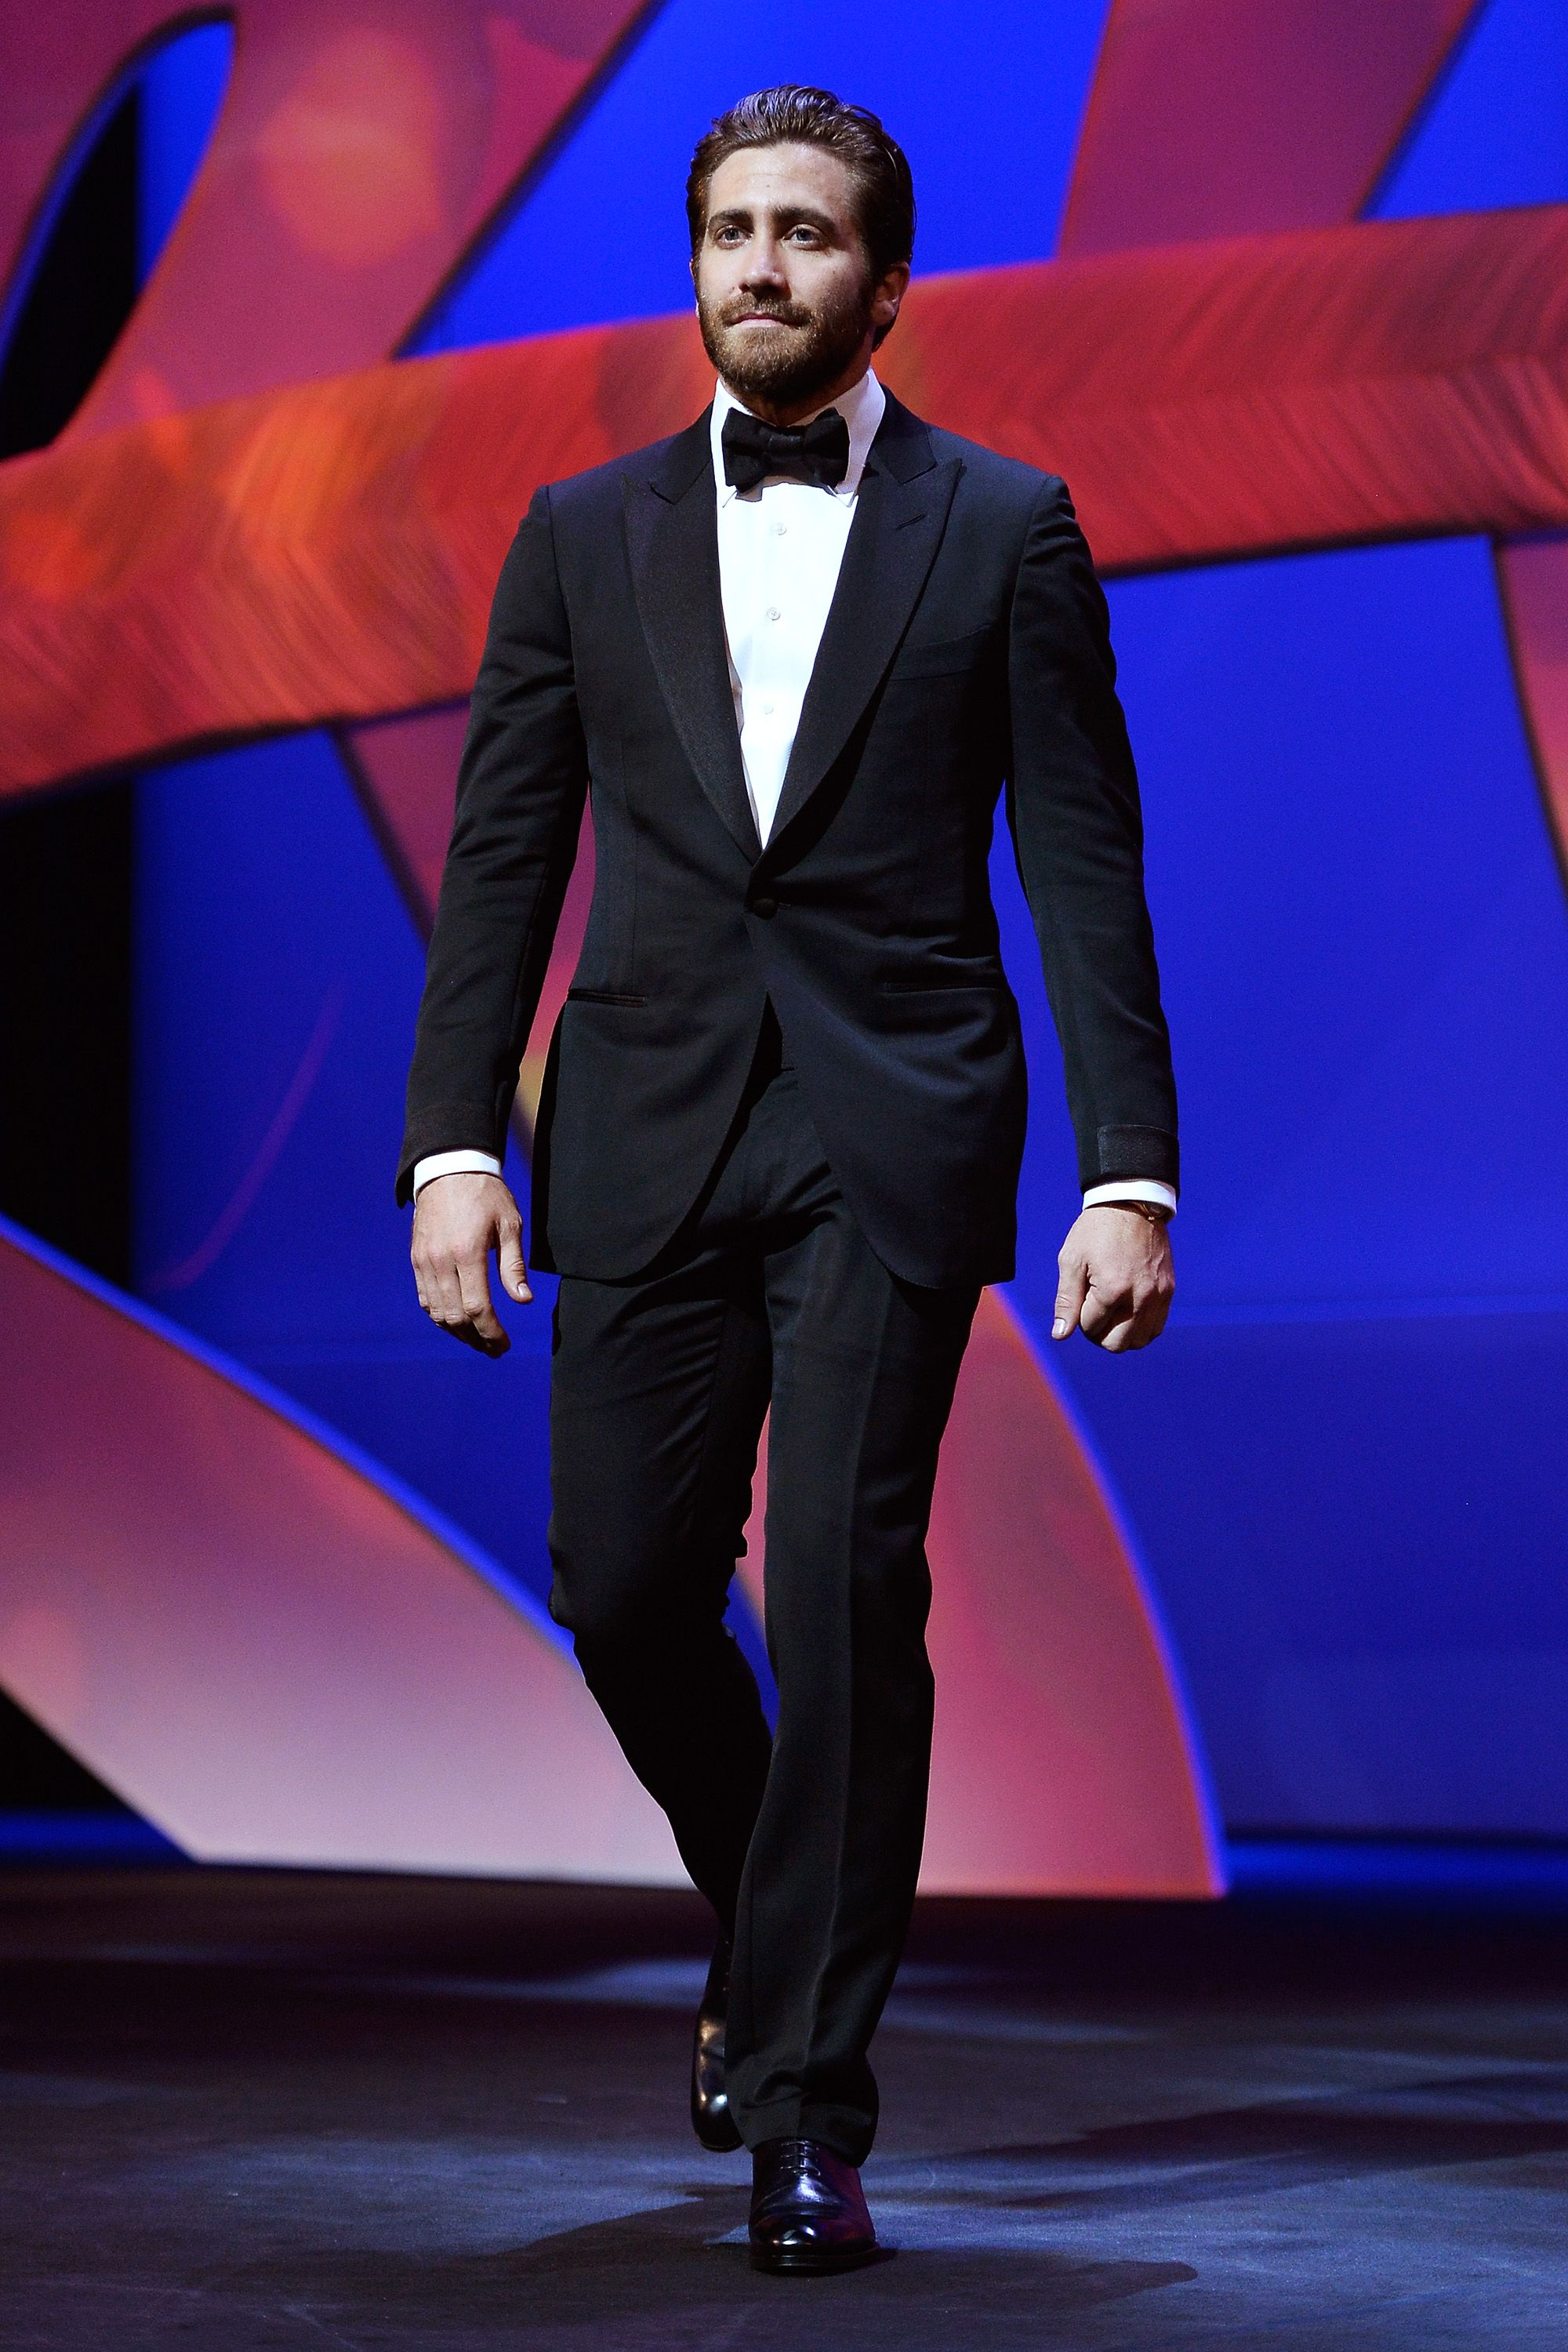 CANNES, FRANCE - MAY 13:  Jake Gyllenhaal during the Opening Ceremony of the 68th annual Cannes Film Festival on May 13, 2015 in Cannes, France.  (Photo by Pascal Le Segretain/Getty Images)